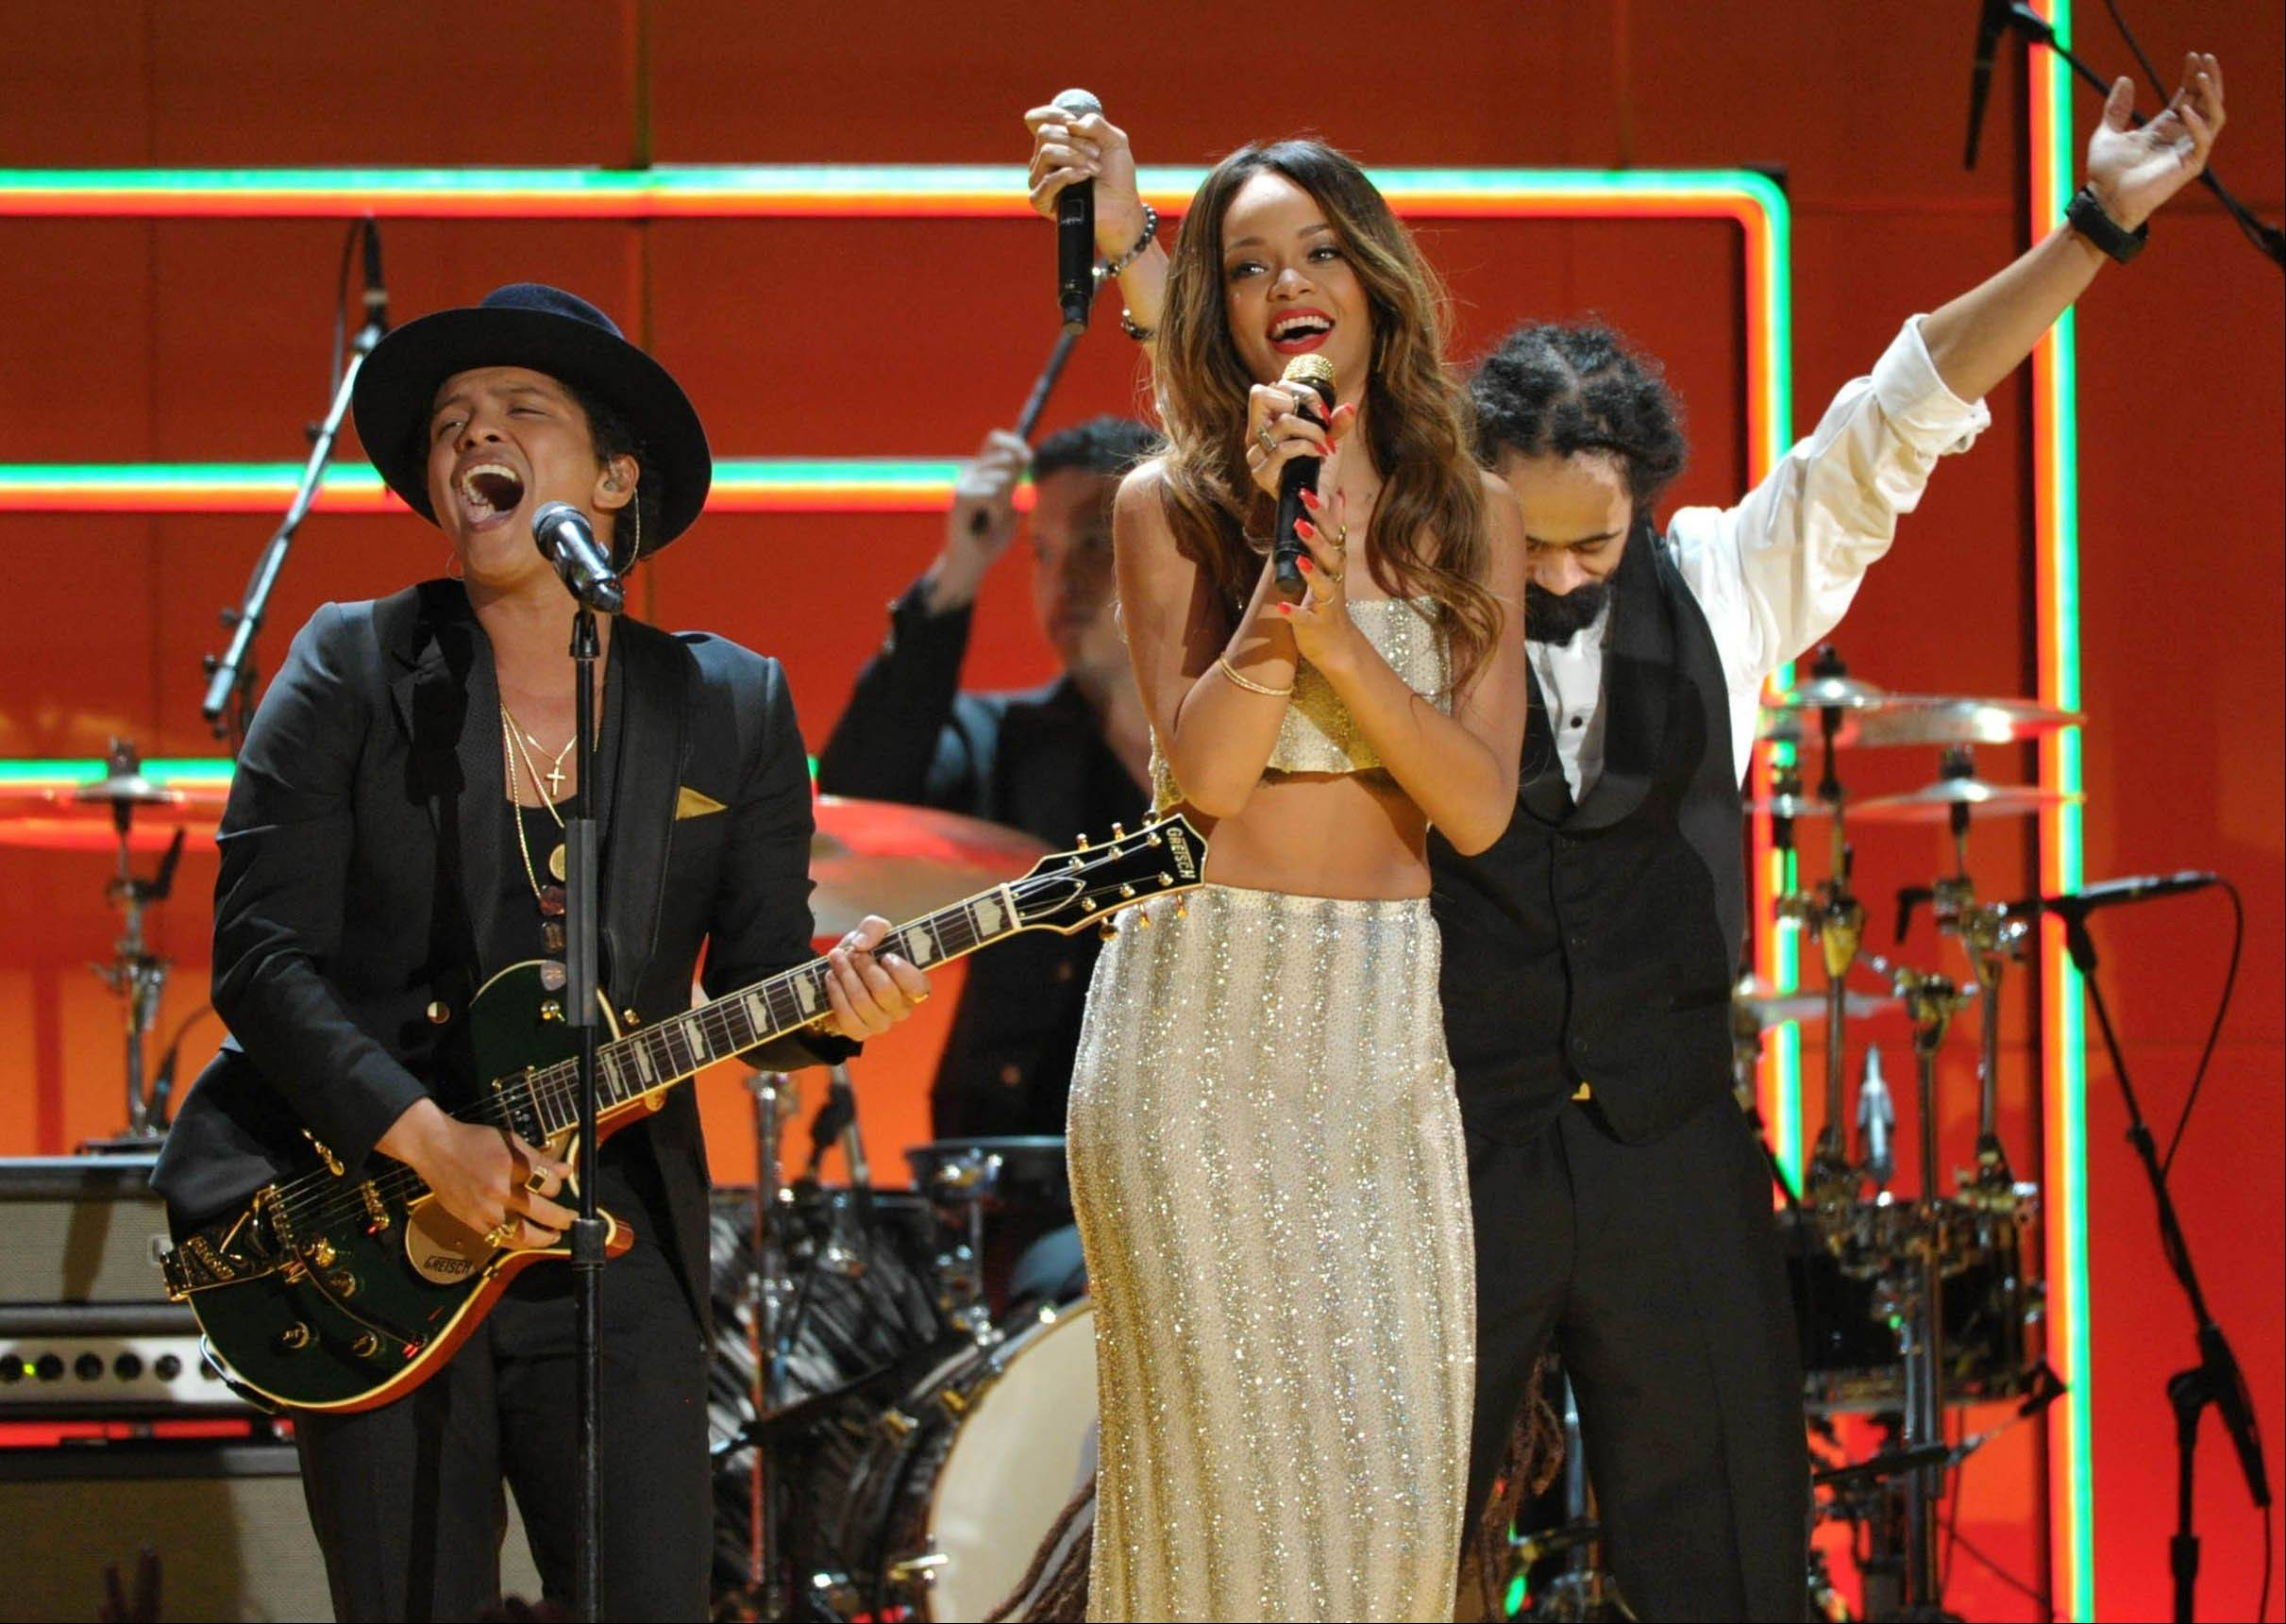 Bruno Mars, left, and Rihanna perform a tribute to Bob Marley at the 55th annual Grammy Awards on Sunday, Feb. 10, 2013, in Los Angeles.